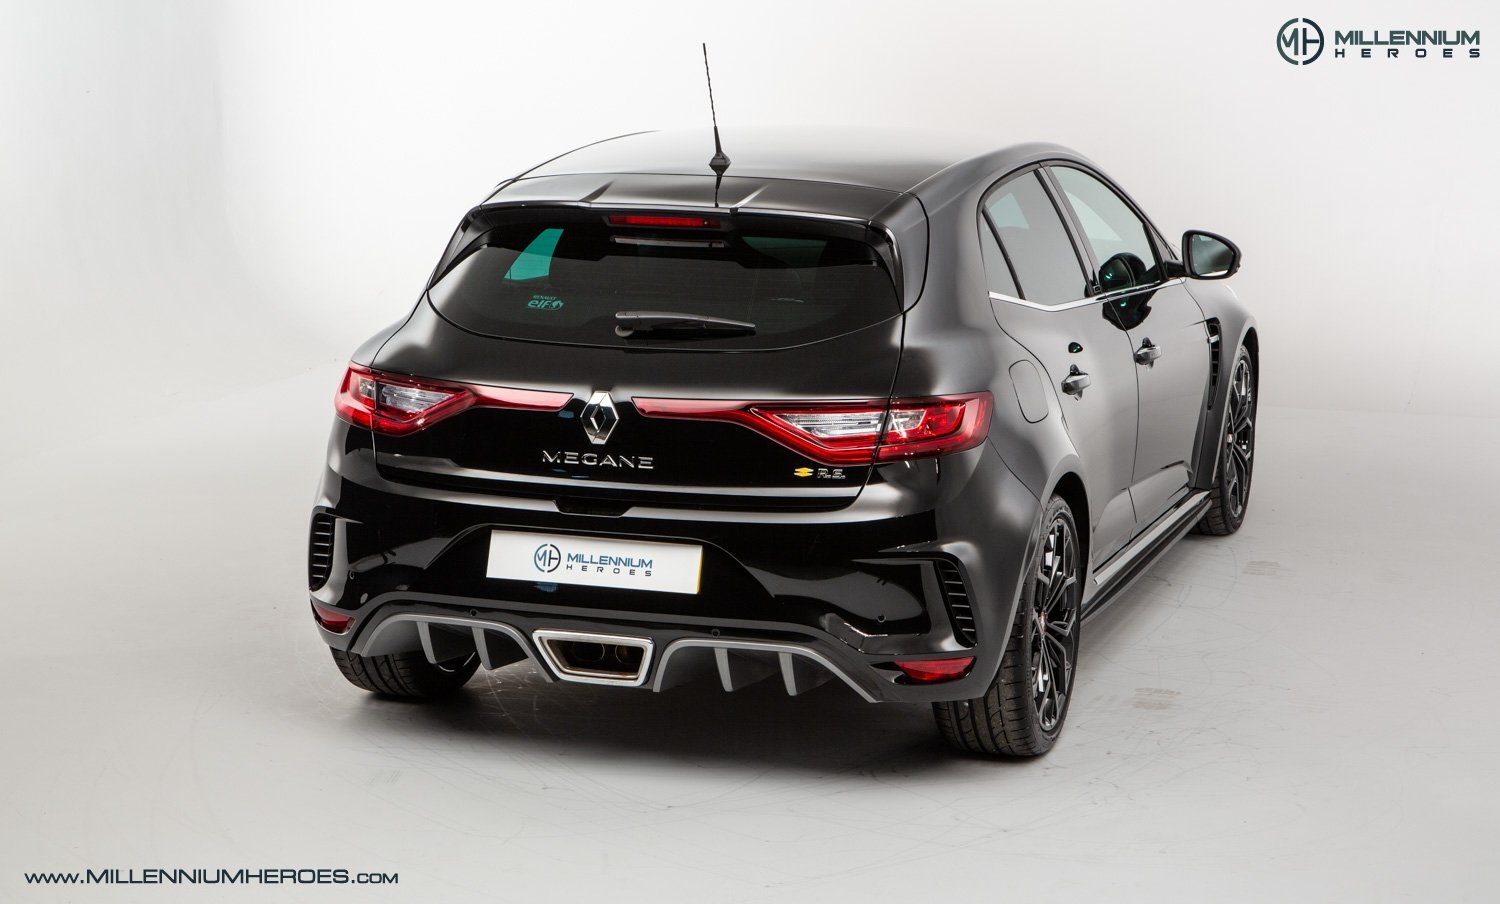 2019 RENAULT MEGANE R.S.280  For Sale (picture 5 of 16)